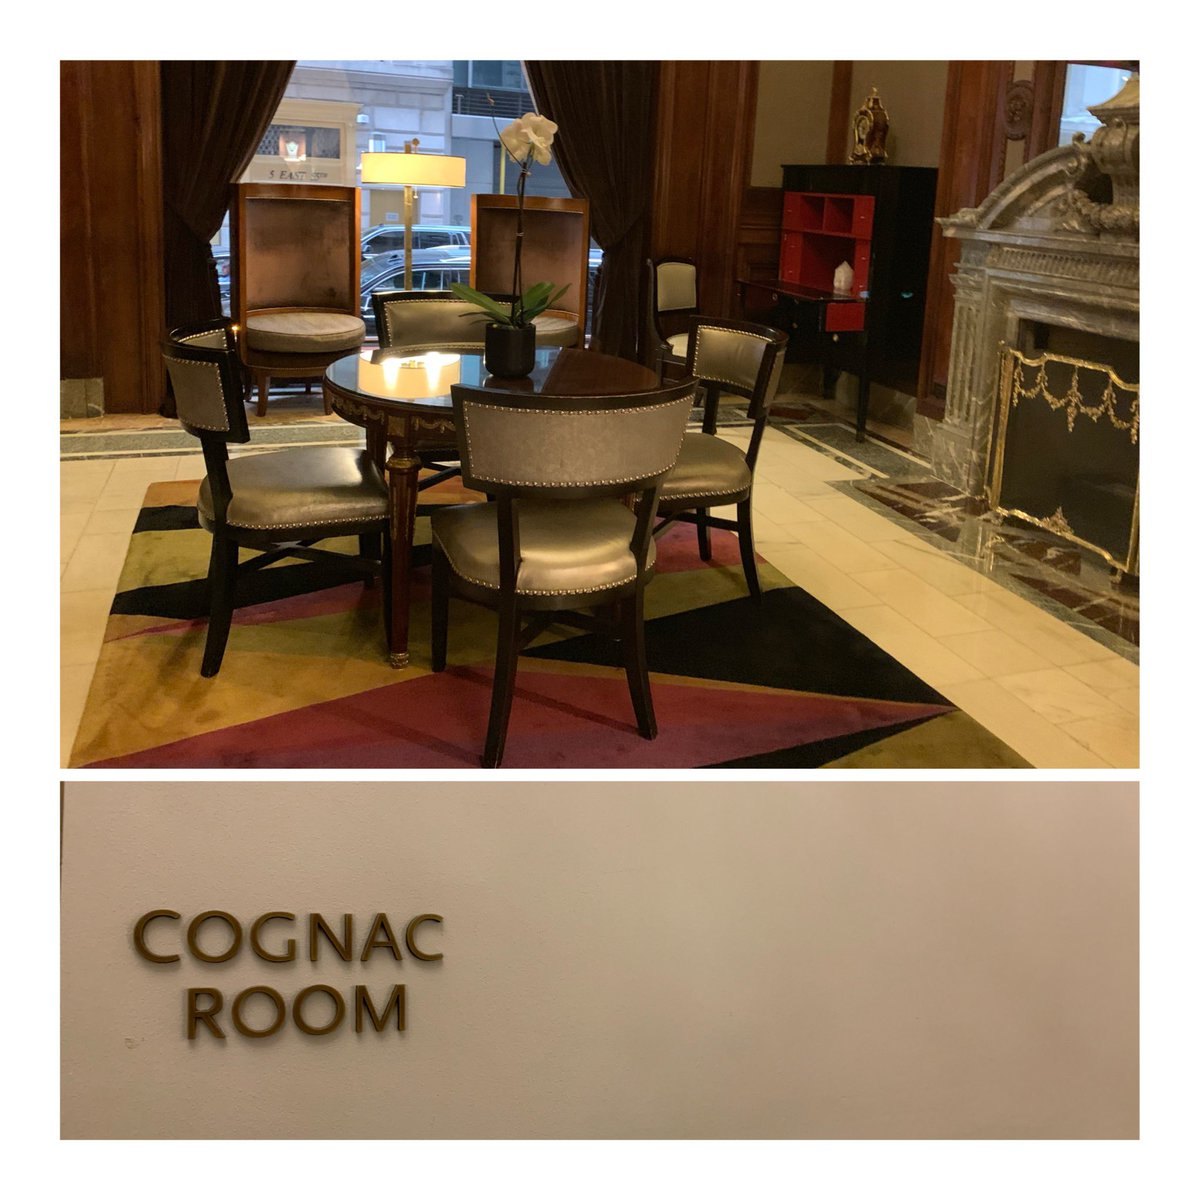 Calling all cognac lovers.... when in #nyc visit @stregisnewyork #cognacroom #stregis #goldenera #midtown #midtownnyc  #newyorkinstagram #historic #5thavebuzz #saks5thave #glamorous #makeareservation #nyc #ny #travelnyc #travelgram #travel #cognac #cognaclover #cognaclifepic.twitter.com/ANlBlNjXjM